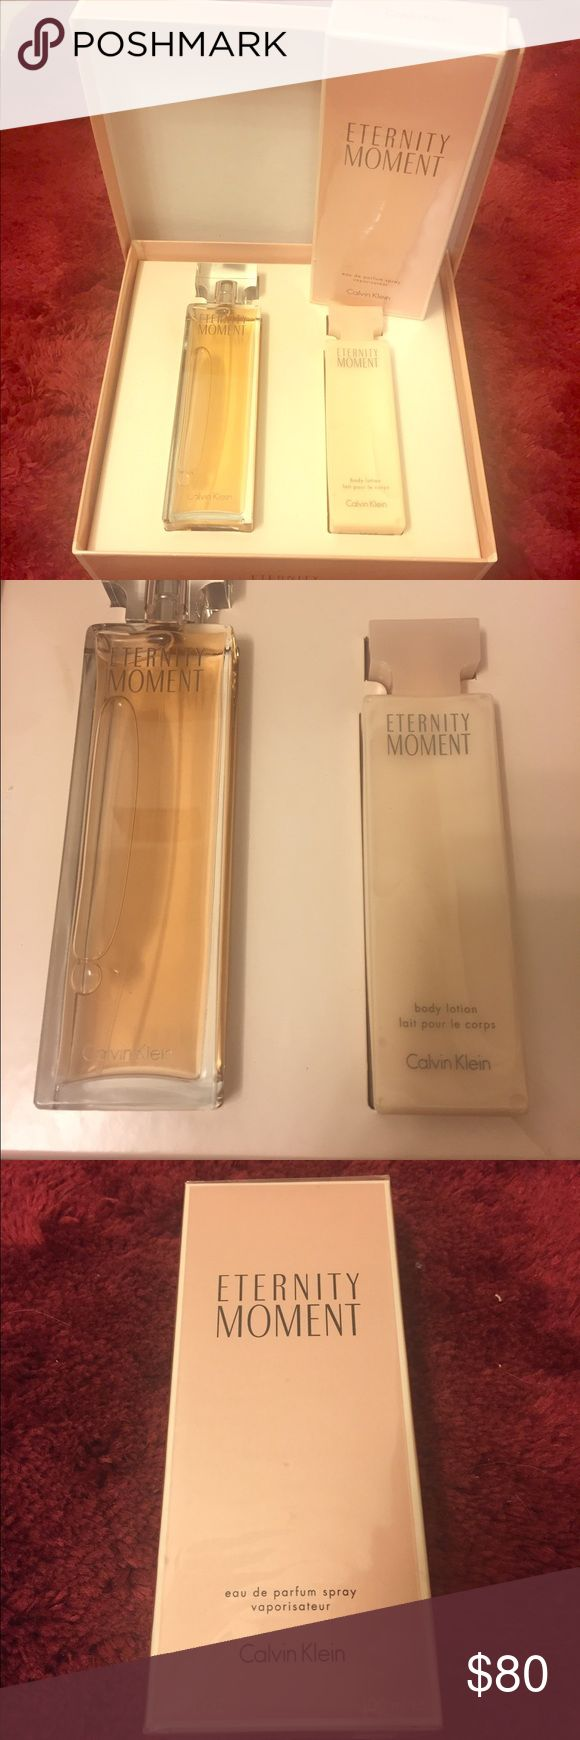 Eternity Moment Perfume Eternity Moment perfume gift set (spray and lotion) with an extra big bottle of spray. All brand new never used and never opened. Calvin Klein Other